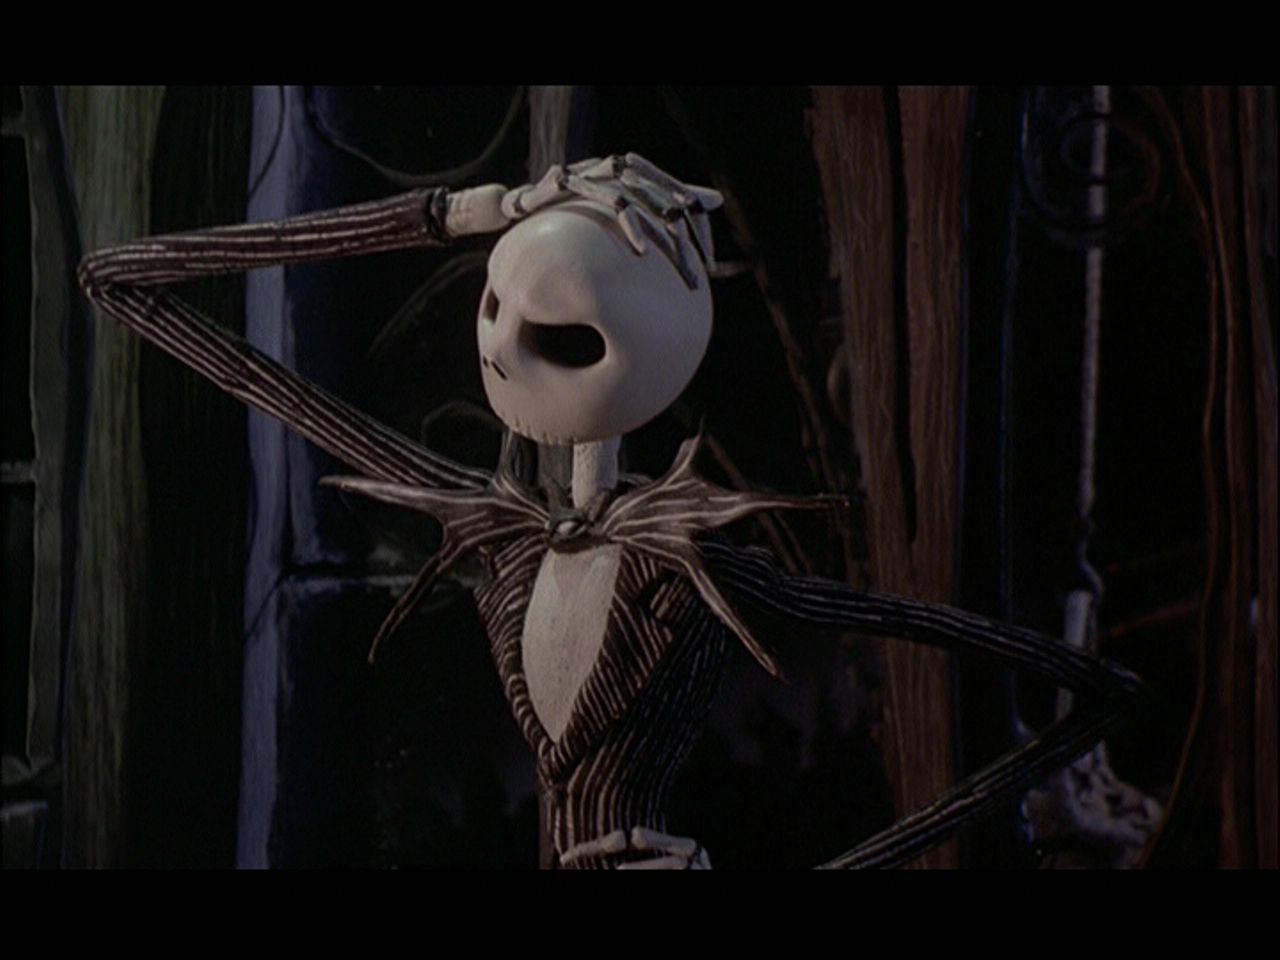 The Nightmare Before Christmas - Nightmare Before Christmas Image ...